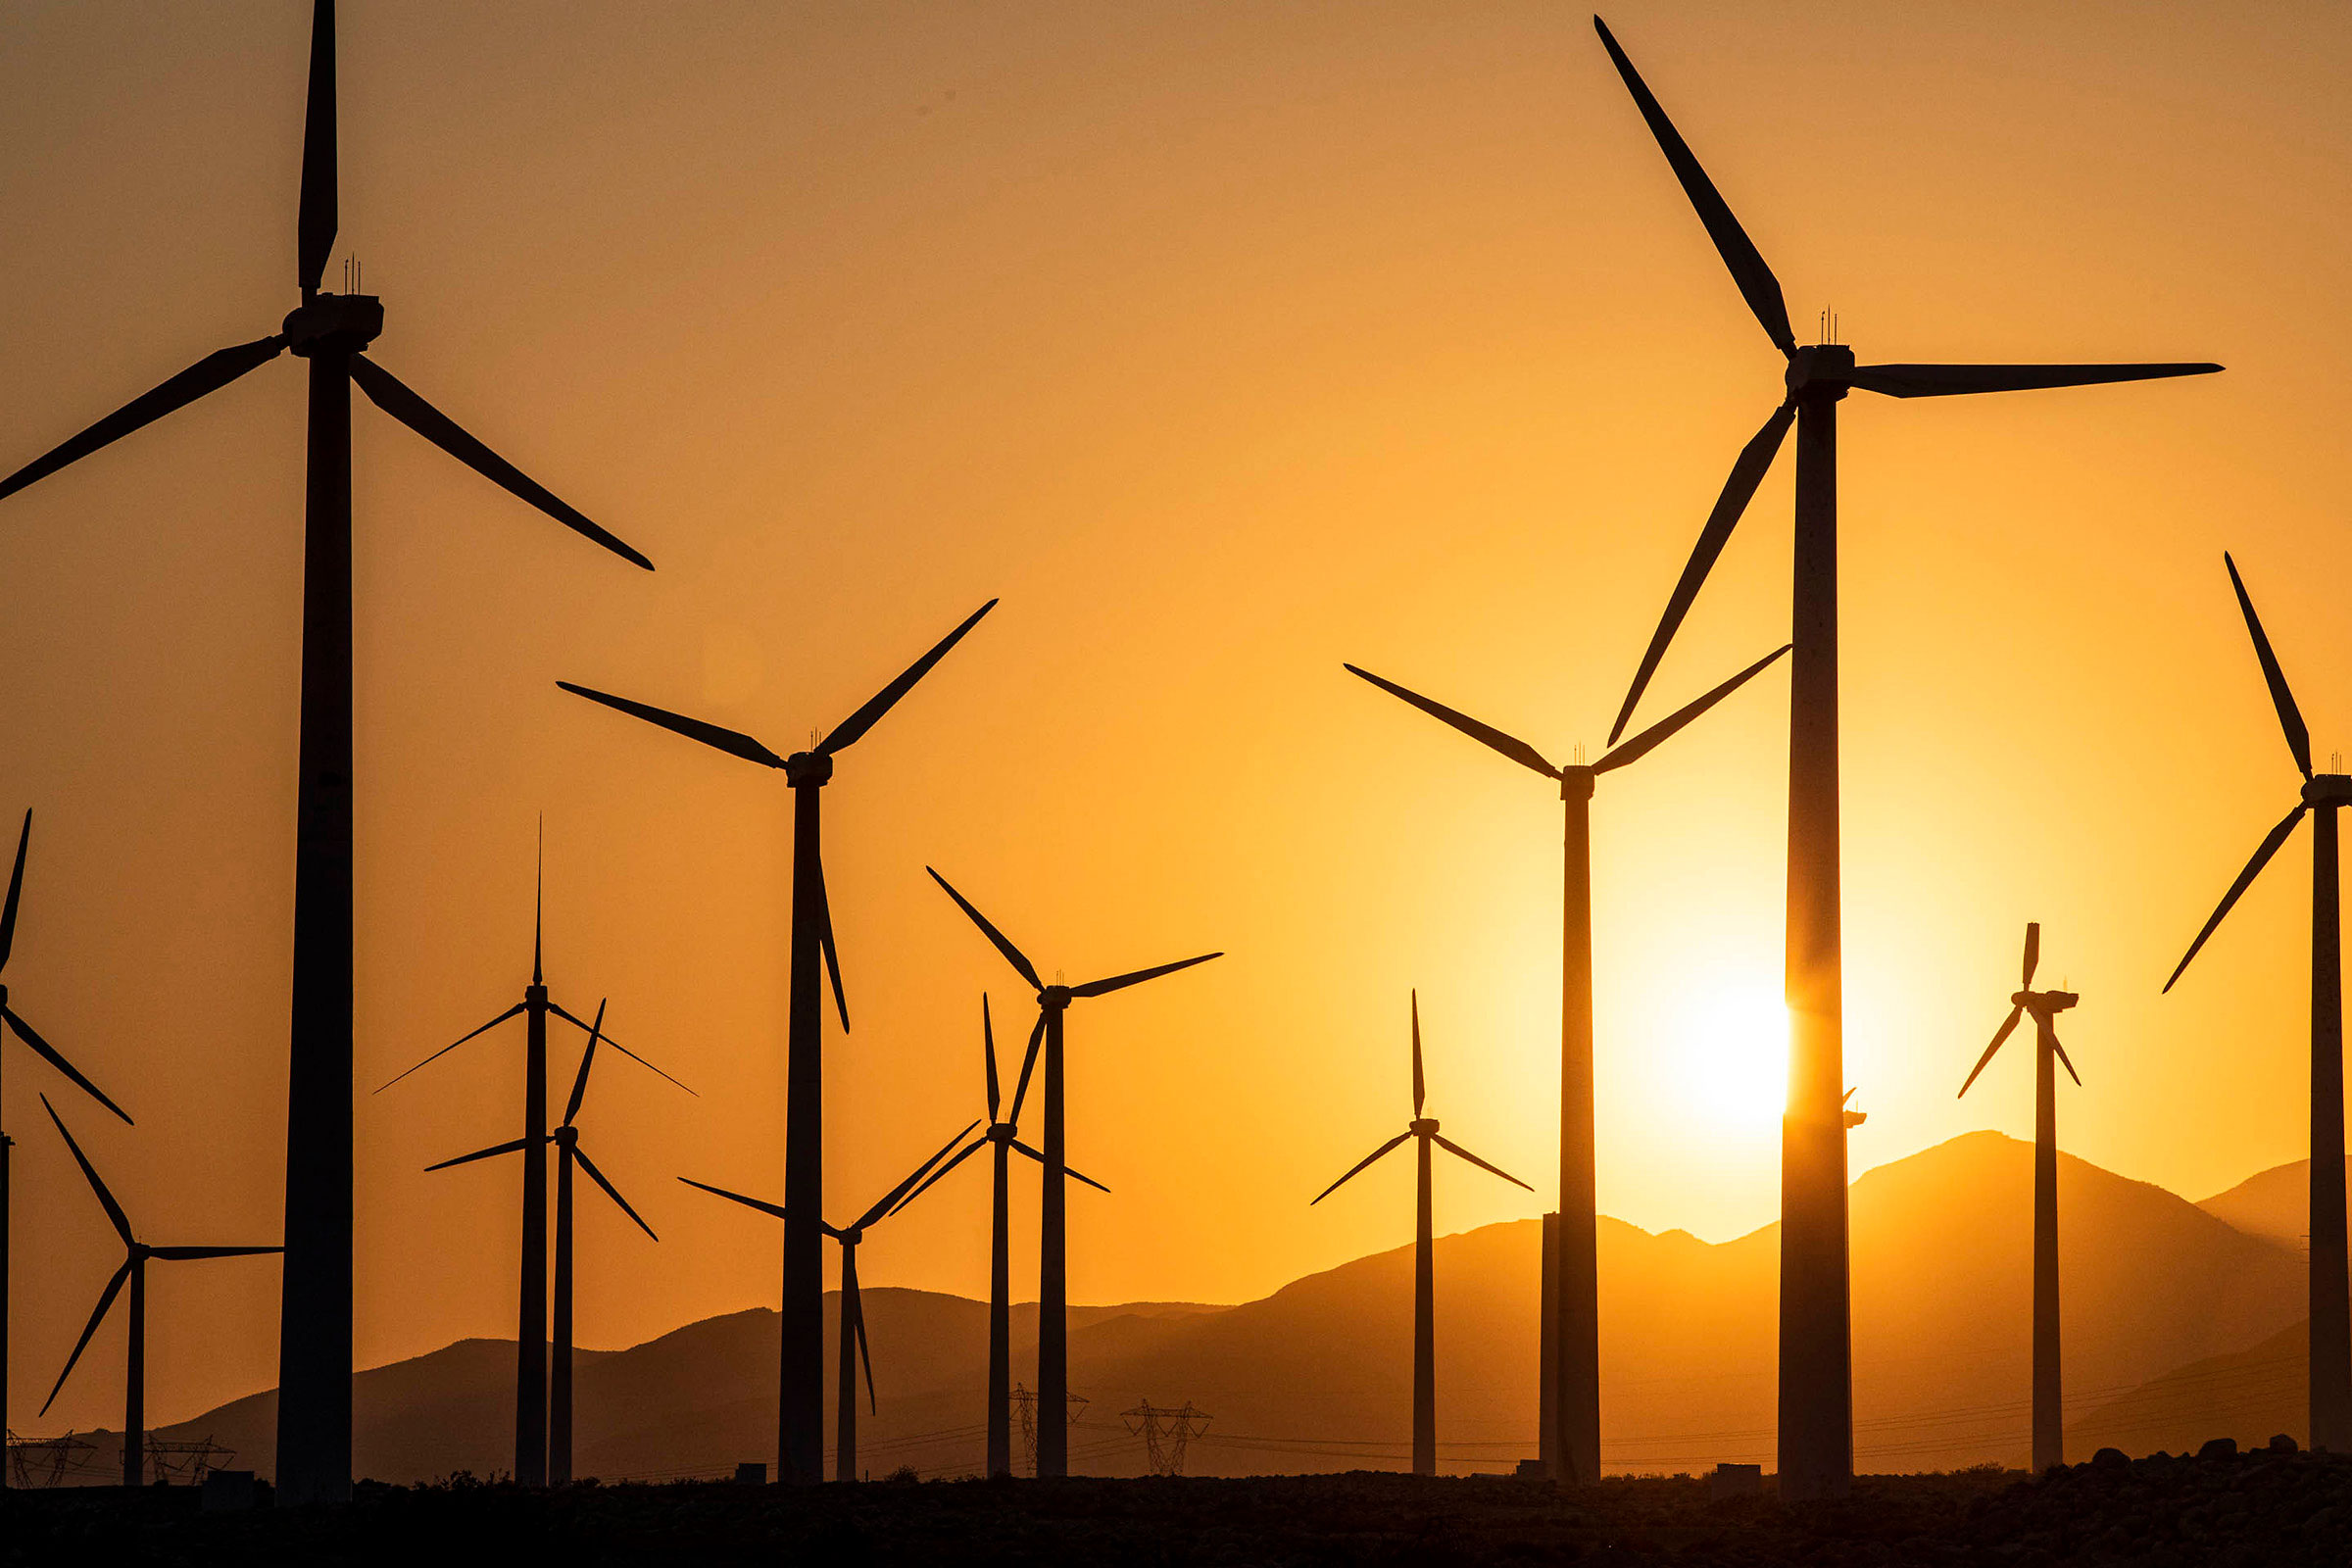 Several wind turbines stand against an orange sky. A bright yellow sun hangs low over mountains in the background.